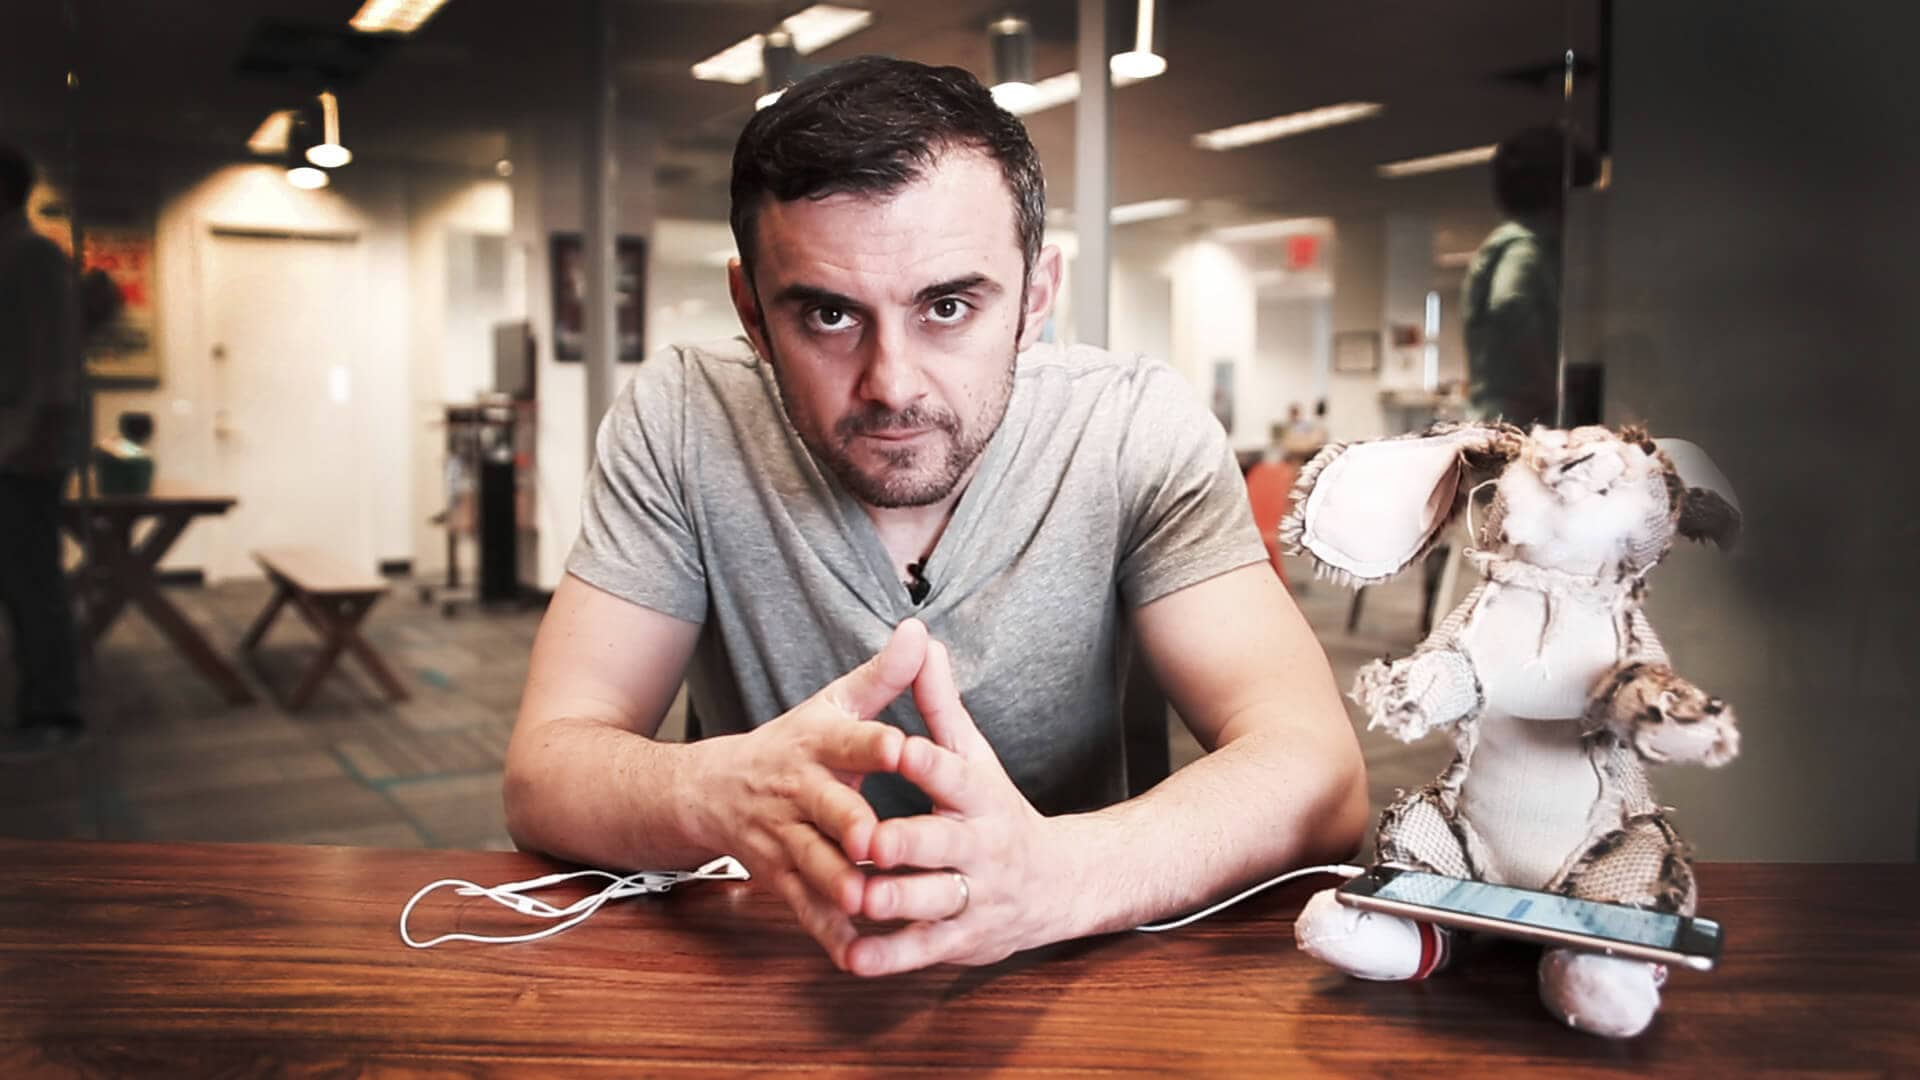 #AskGaryVee Episode 93